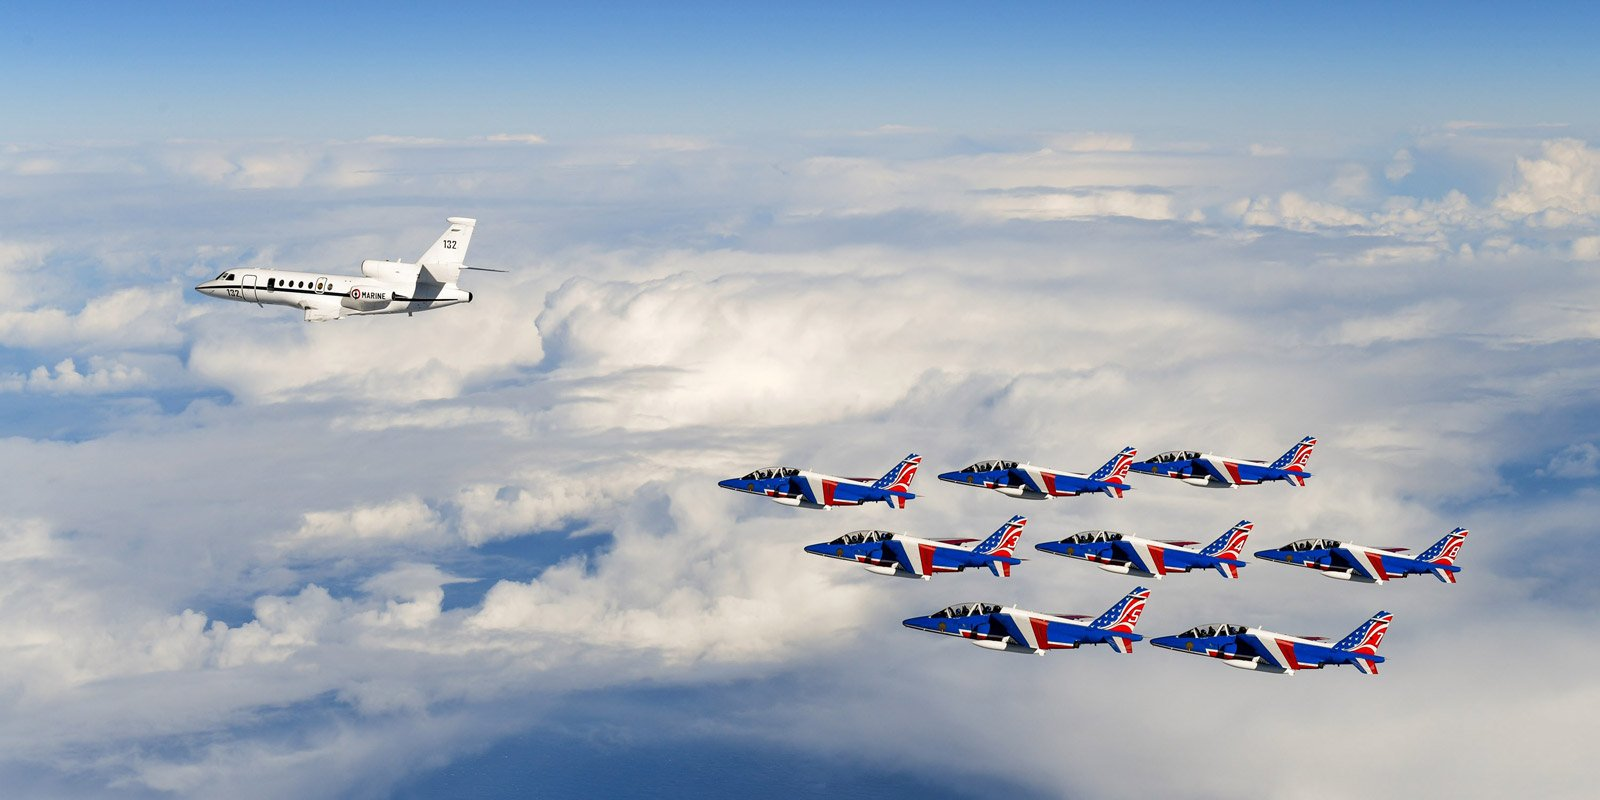 Common Vision Tour >> The Patrouille de France's tour of the United States of America